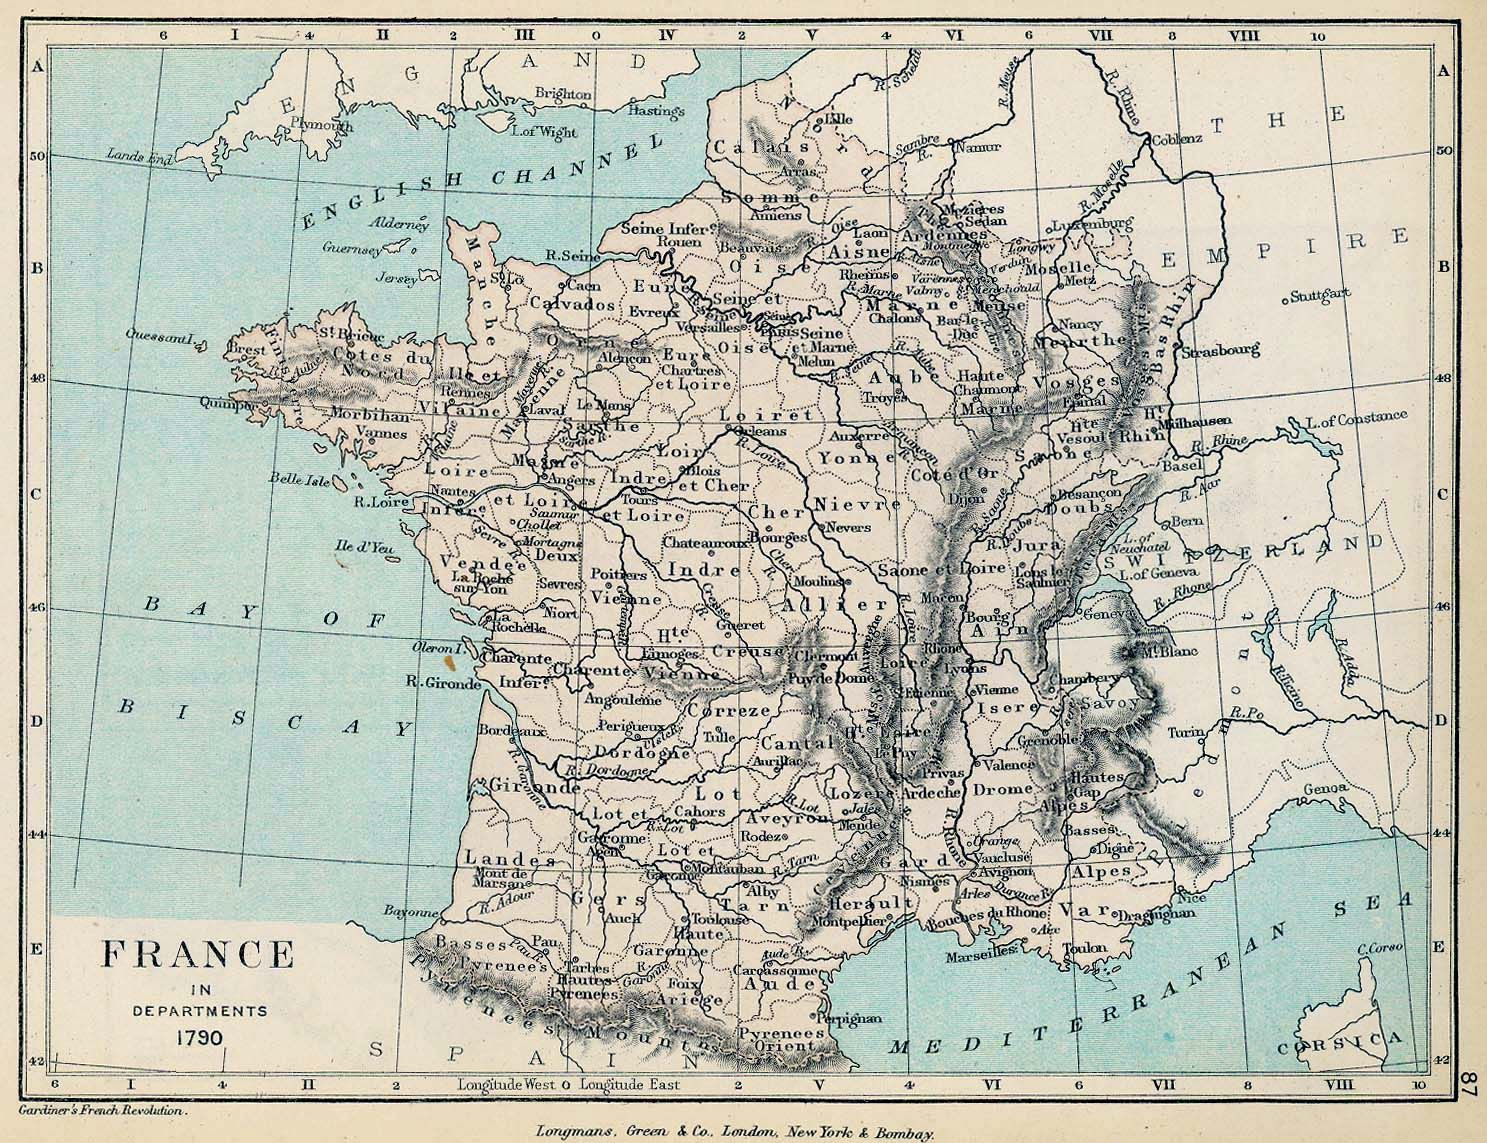 Map Of France Versailles.Map Of France In Departments 1790 French Revolution French